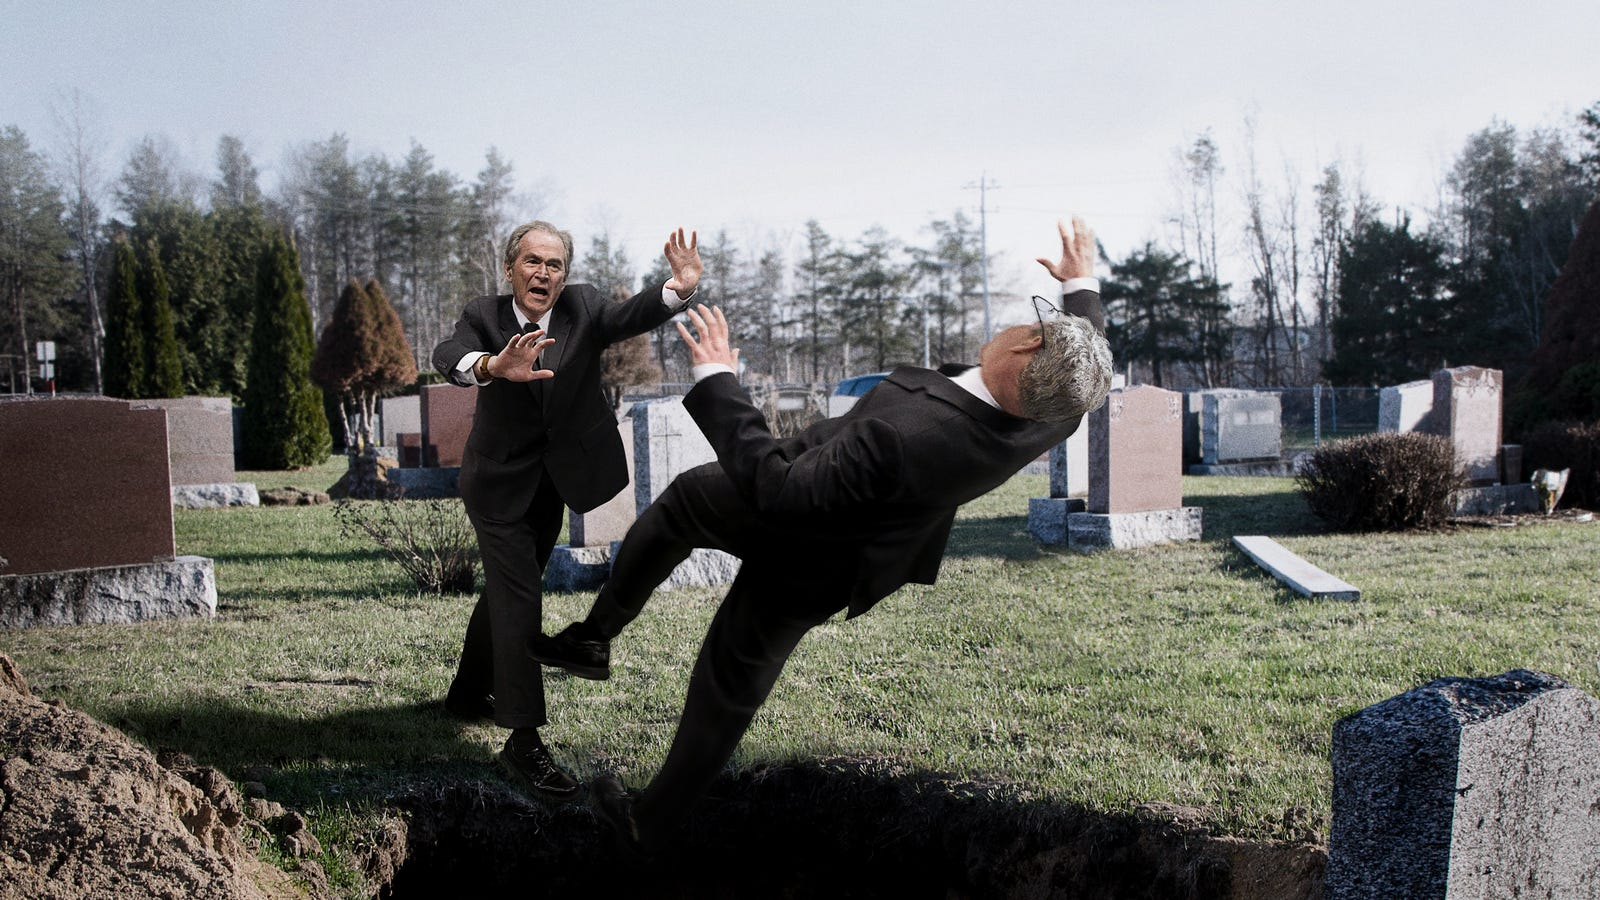 'No, Take Jeb Instead,' Screams George W. Bush While Shoving Brother Into Father's Grave